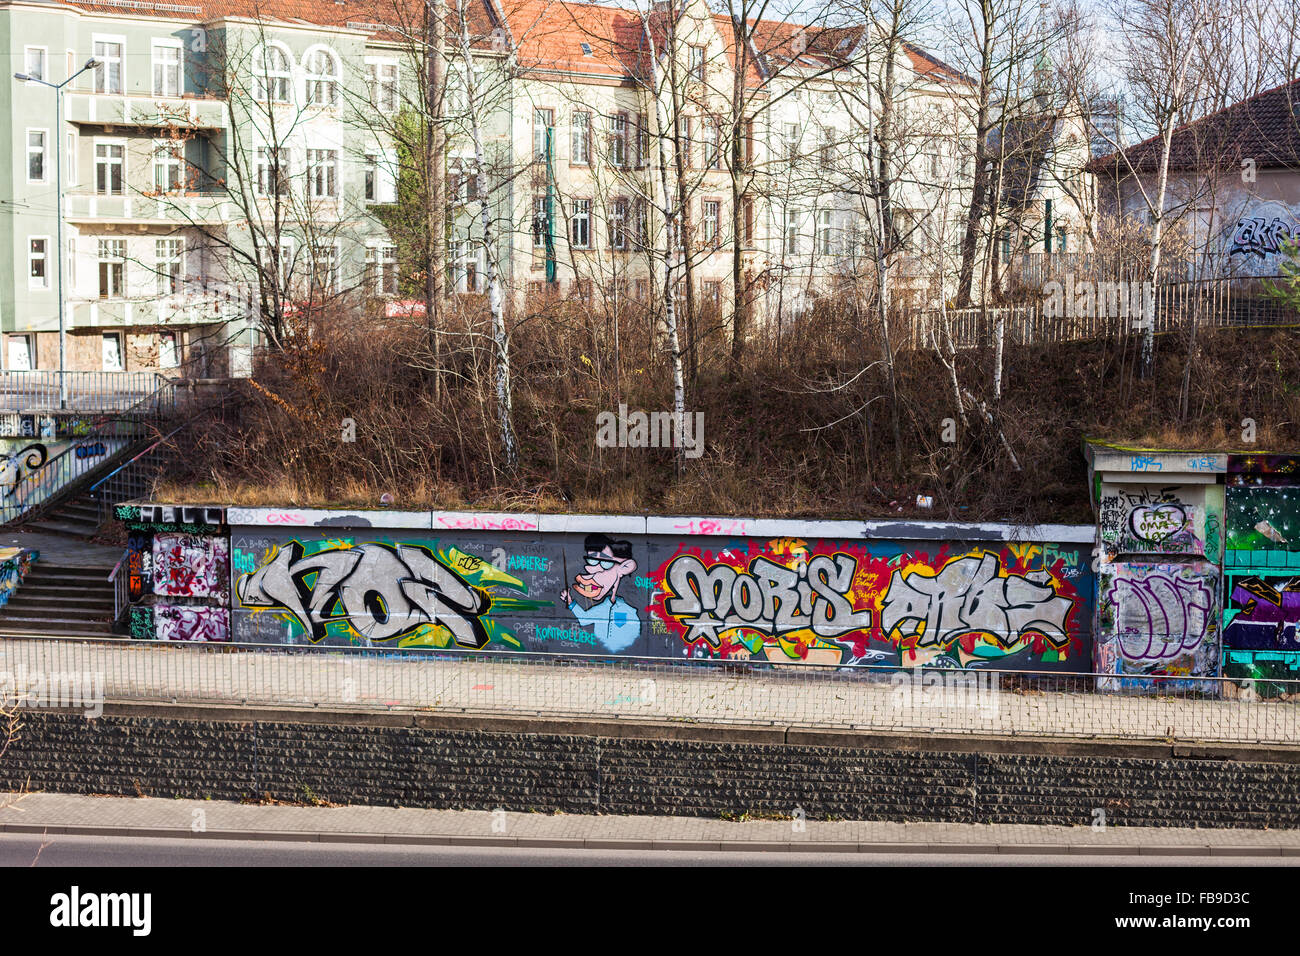 Elaborate graffiti at the side of Leipziger Str in Frankfurt (Oder), Germany Stock Photo